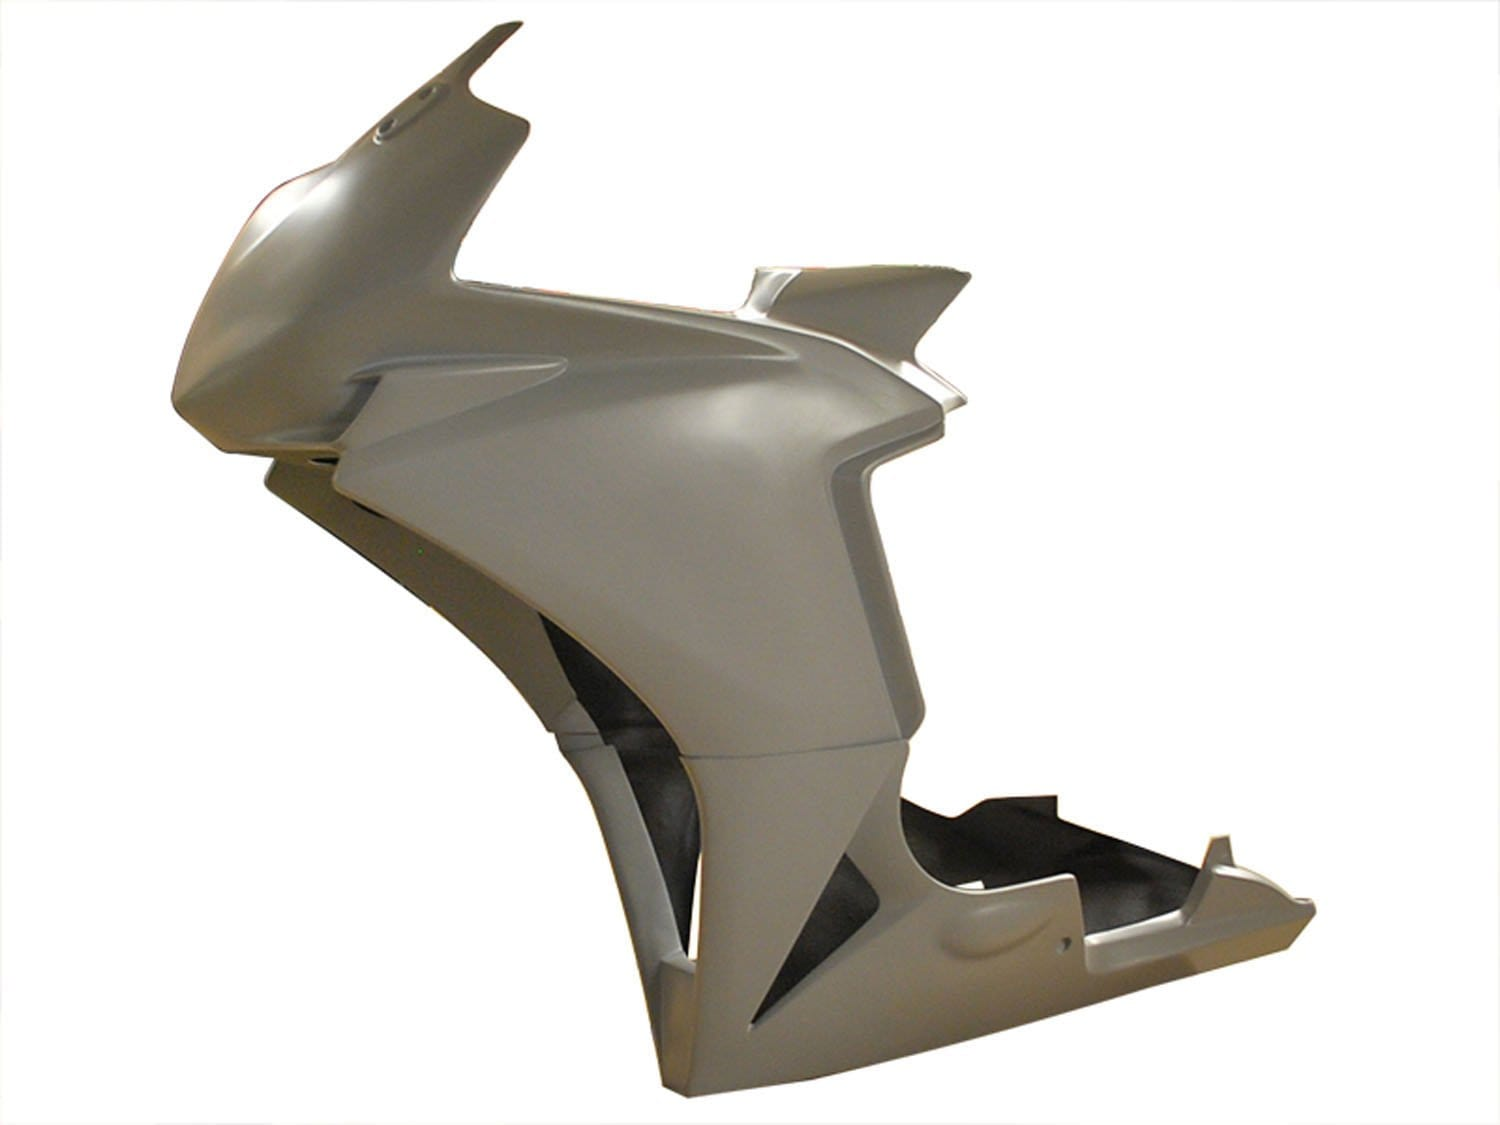 Honda CBR500R 2013-2014 Lower Fairing - Pro Series - Woodcraft Technologies - Motorcycle Parts